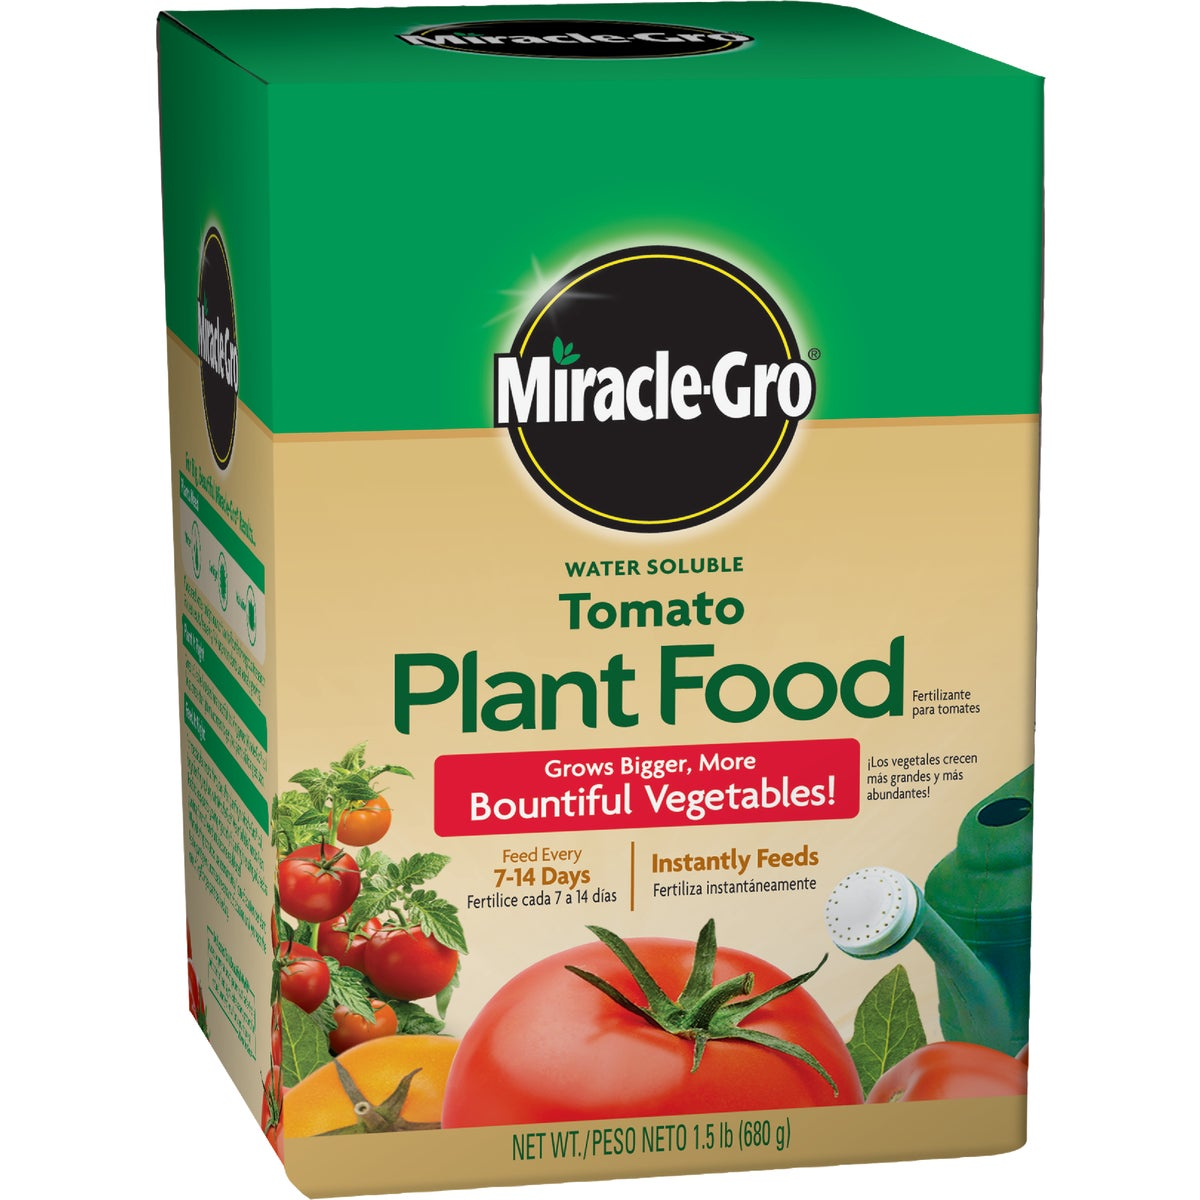 1-1/2LB MGRO TOMATO FOOD - 2000422 by Scotts Company